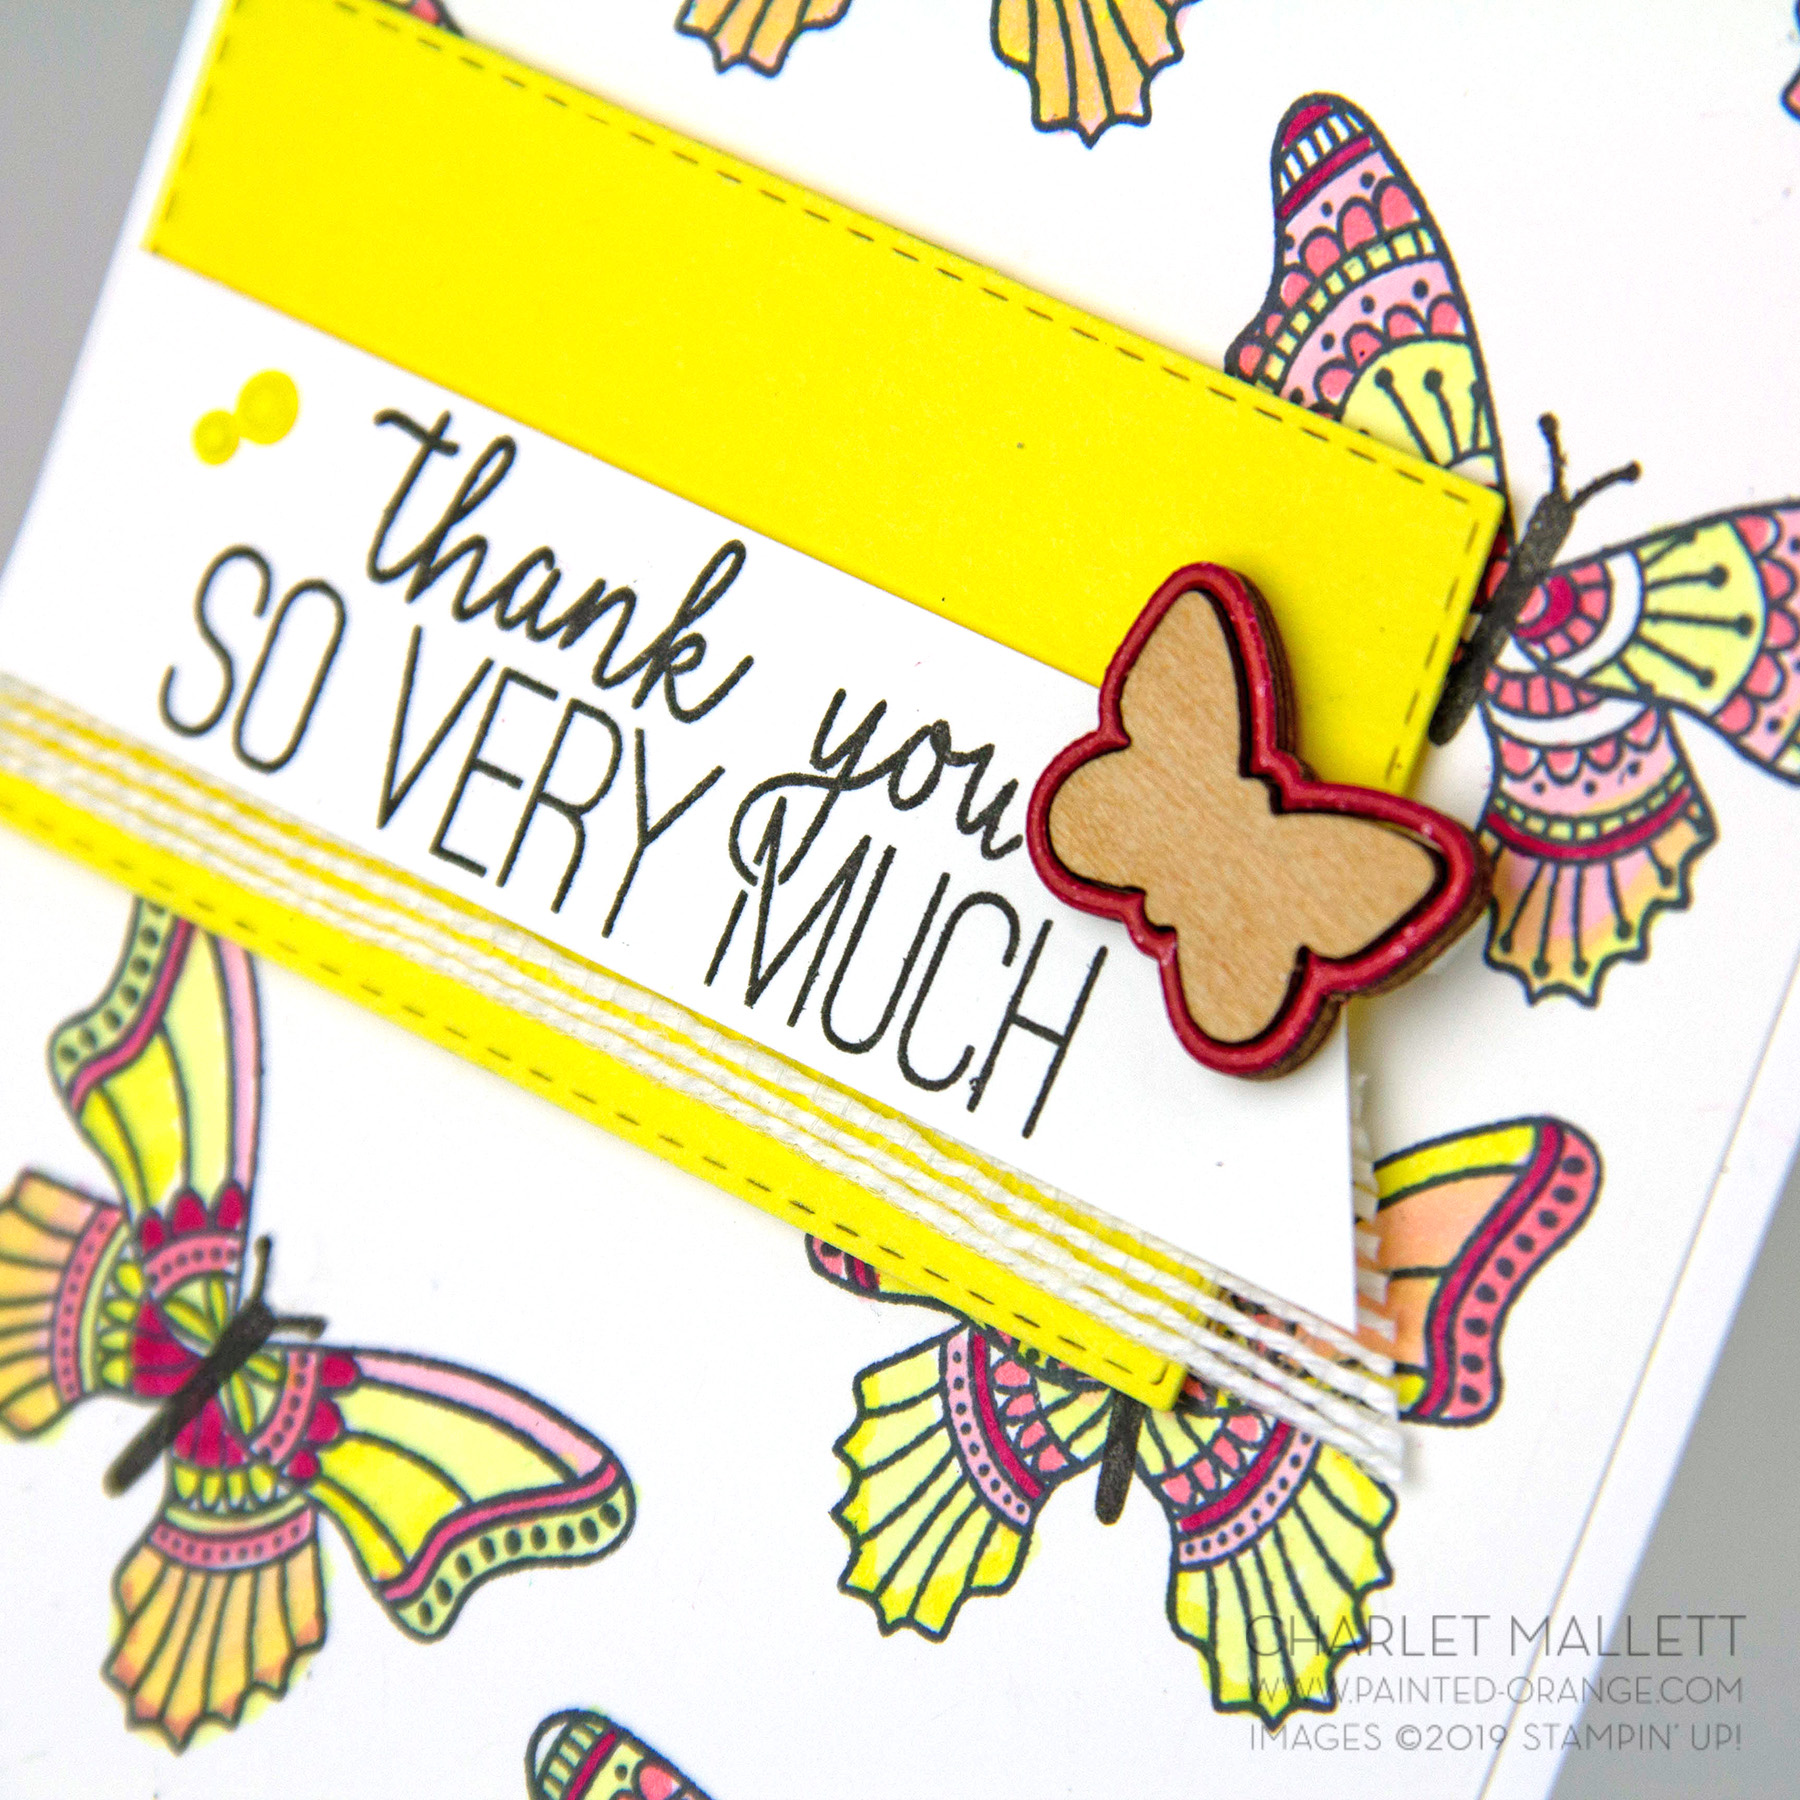 Butterfly Gala Thank You card - Charlet Mallett, Stampin' Up!